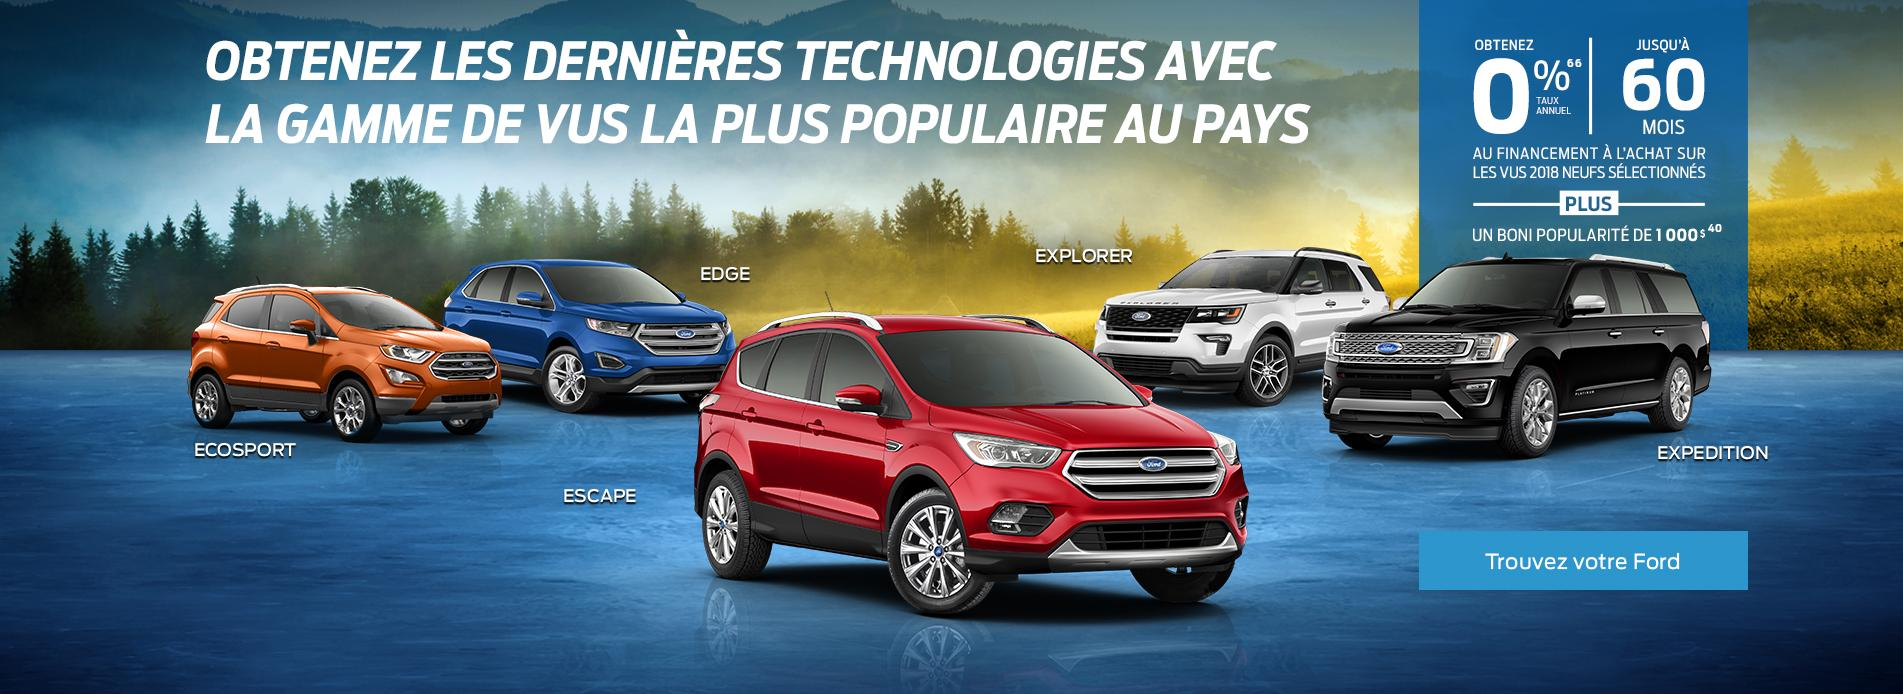 Escape, Explorer, Expedition, Edge, EcoSport